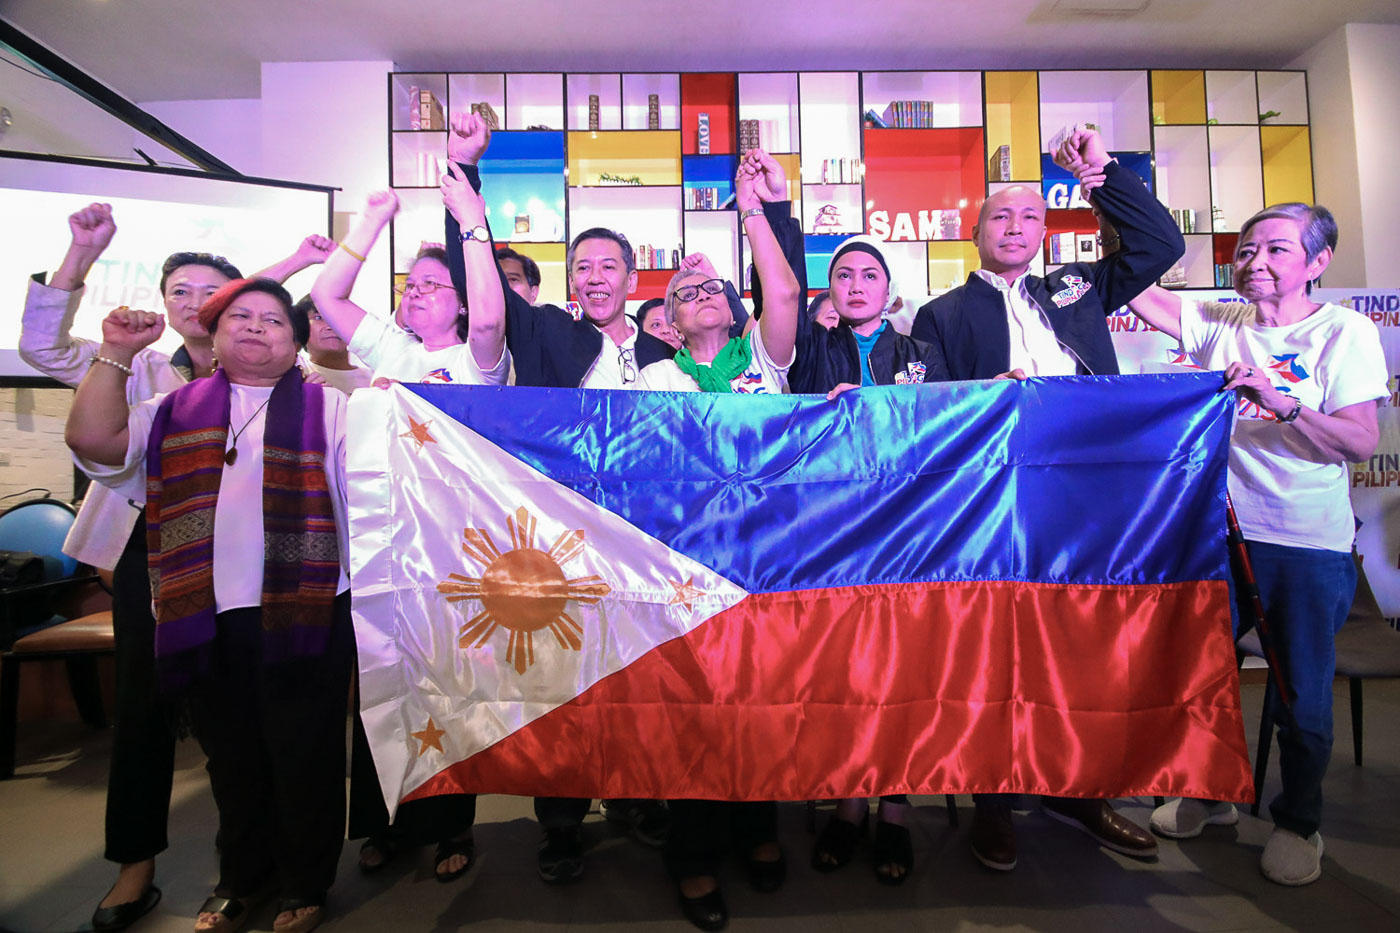 IN TIME FOR POLLS. Tindig Pilipinas endorses senatorial bets, Magdalo Rep. Gary Alejano, Bangsamoro leader Samira Gutoc Tomawis, and La Salle College of Law dean Atty. Jose Manuel u00e2u0080u009cChelu00e2u0080u009d Diokno at a press conference in Quezon City on October 12, 2018. Photo by Darren Langit/Rappler